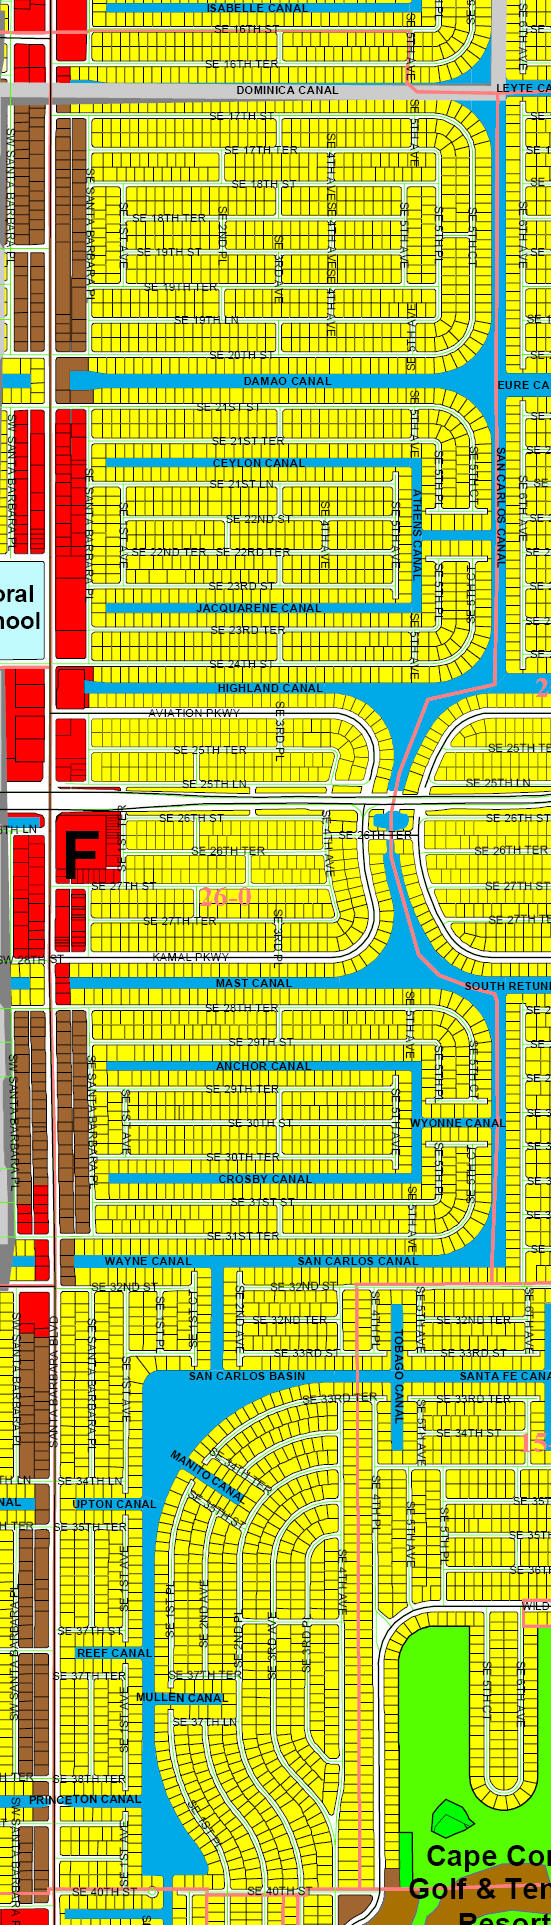 street and canal map of Cape Coral unit 26